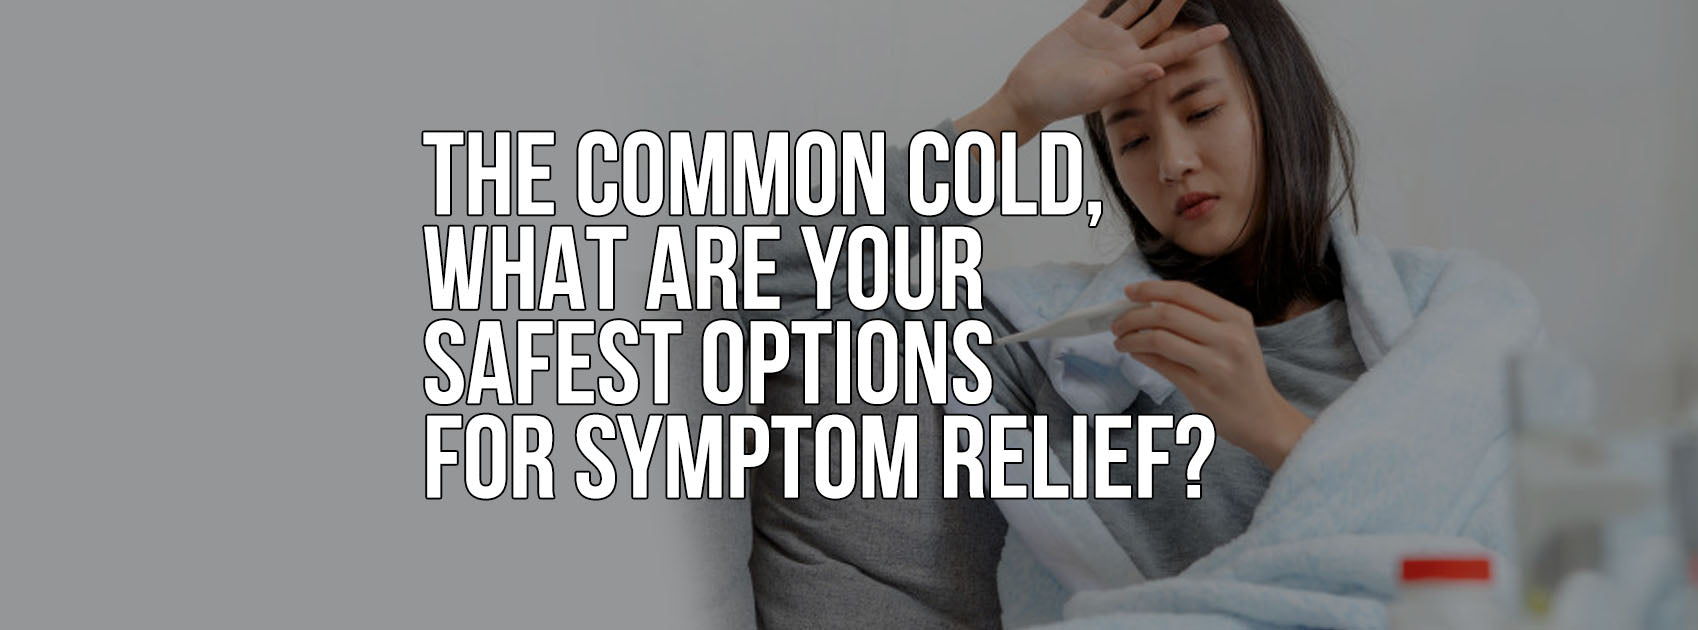 THE COMMON COLD, WHAT ARE YOUR SAFEST OPTIONS FOR SYMPTOM RELIEF?